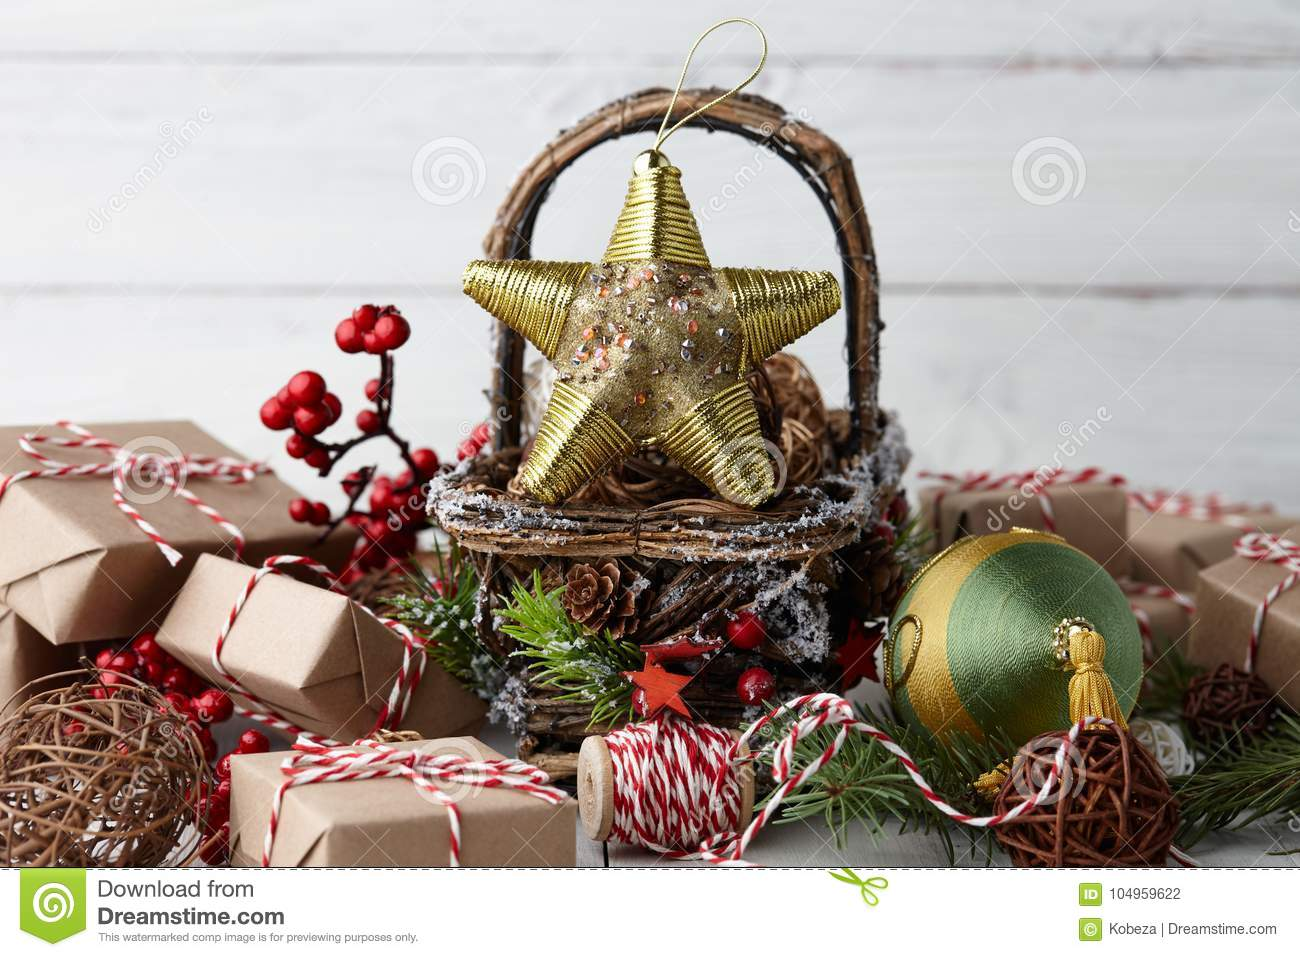 download christmas decorations basket on white planks stock photo image of rattan ball